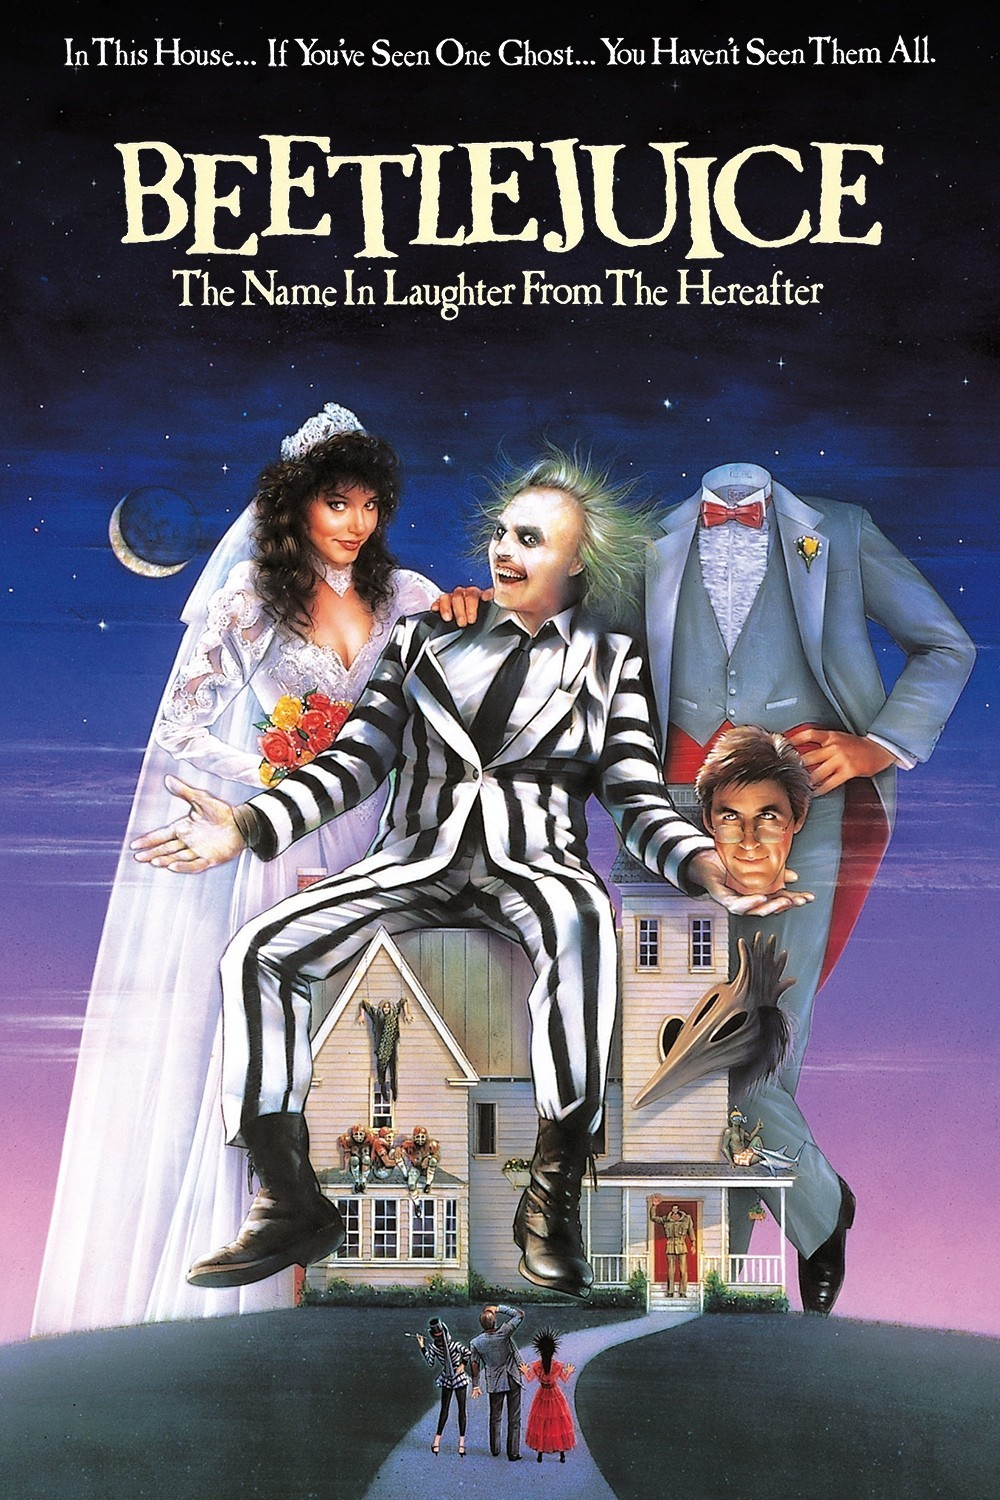 Beetlejuice! Beetlejuice! Beetlejuice! | All That I Love